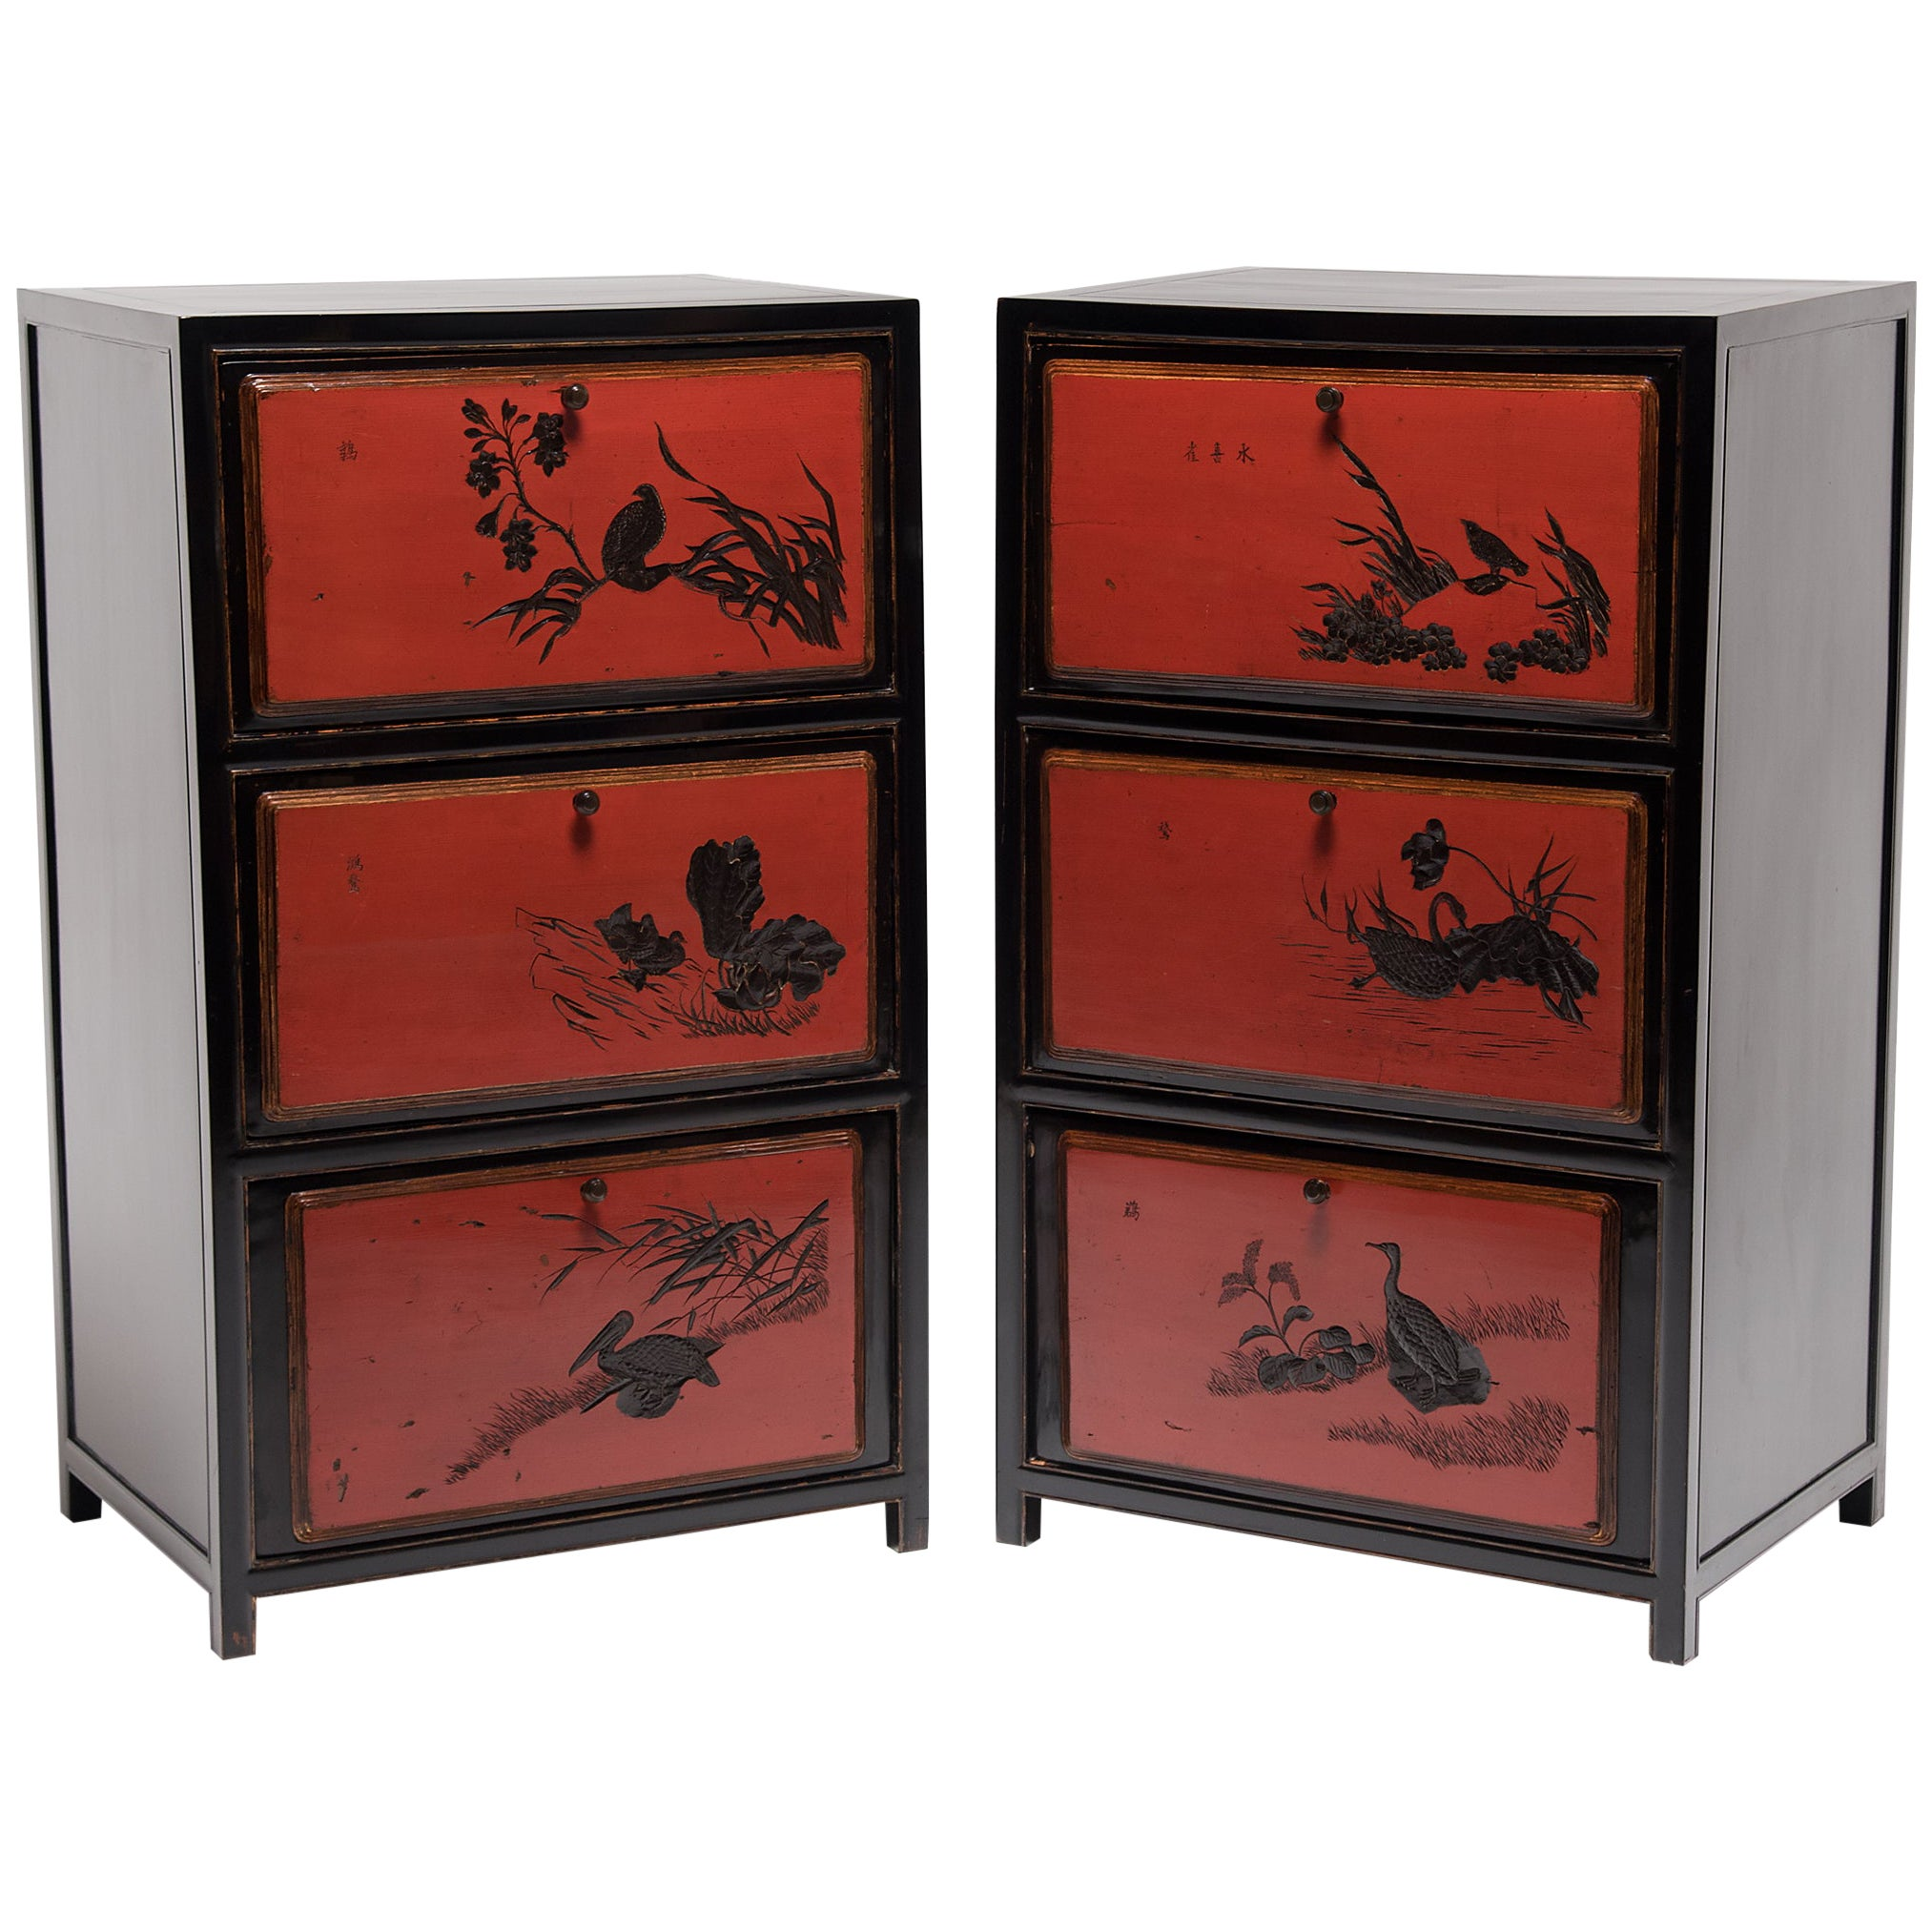 Pair of Chinese Red Lacquer Cabinets with Poetic Pairings, circa 1900